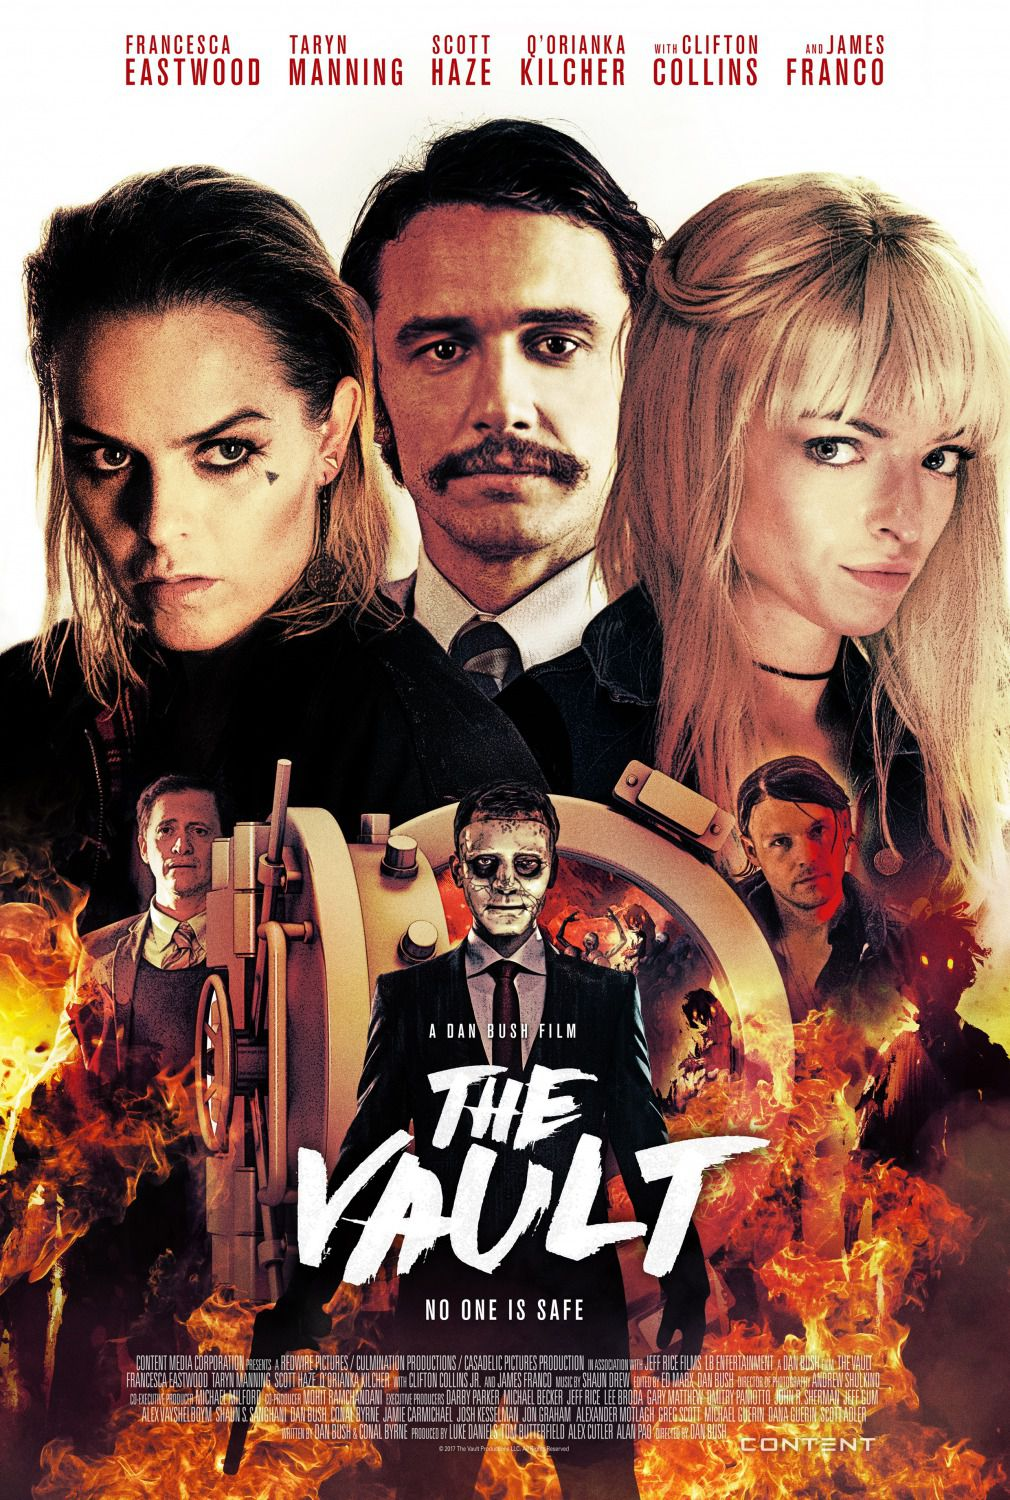 The Vault - film poster - Francesca Eastwood - Taryn Manning - Scott Haze - Q'Orianka Kilcher - Clifton Collins - James Franco